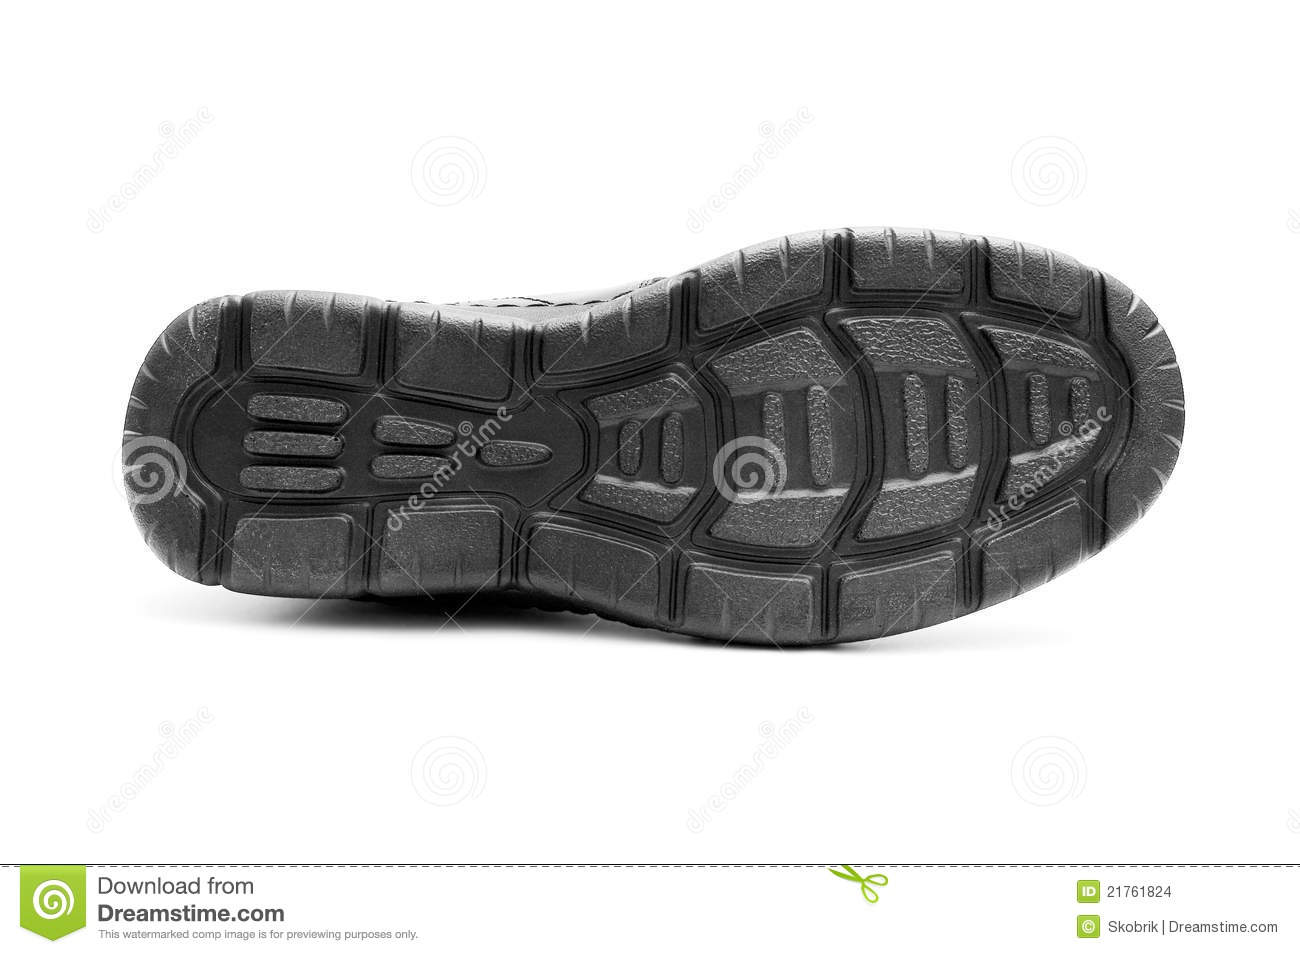 how to fix bottom of shoes